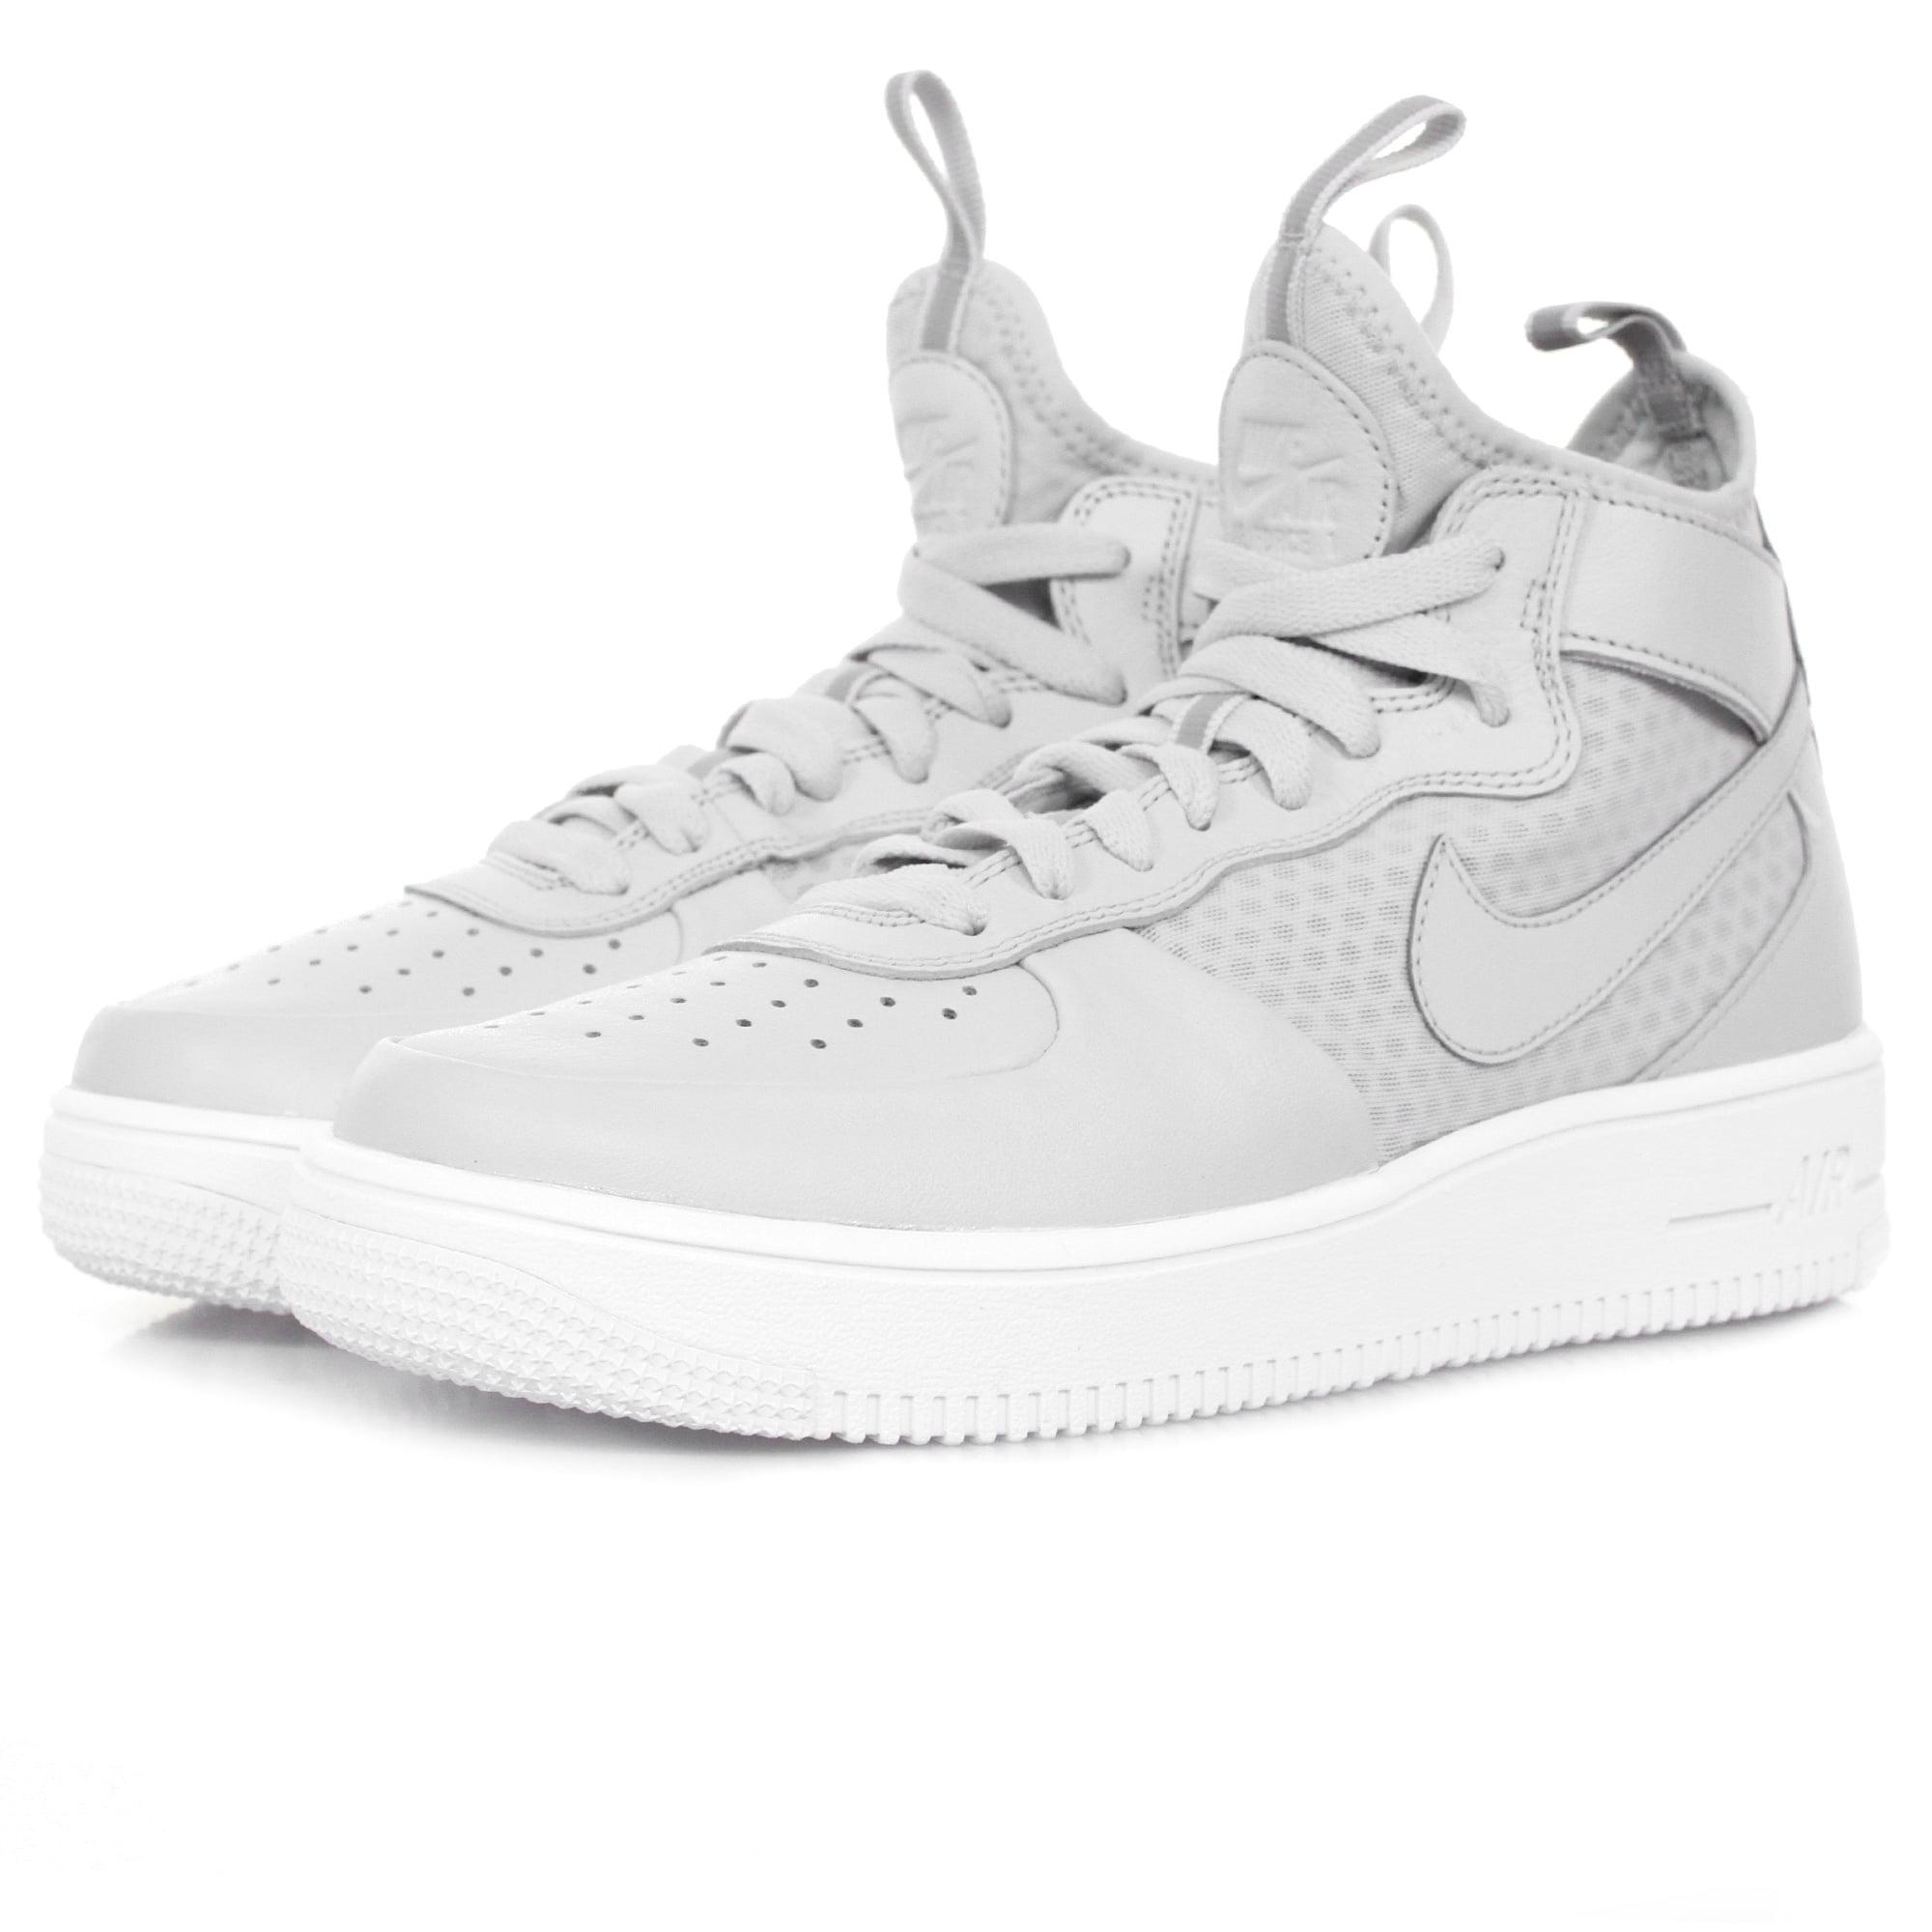 Lyst - Nike Air Force 1 Ultraforce Mid Platine Shoe 864014 in White ... 187f1abe8